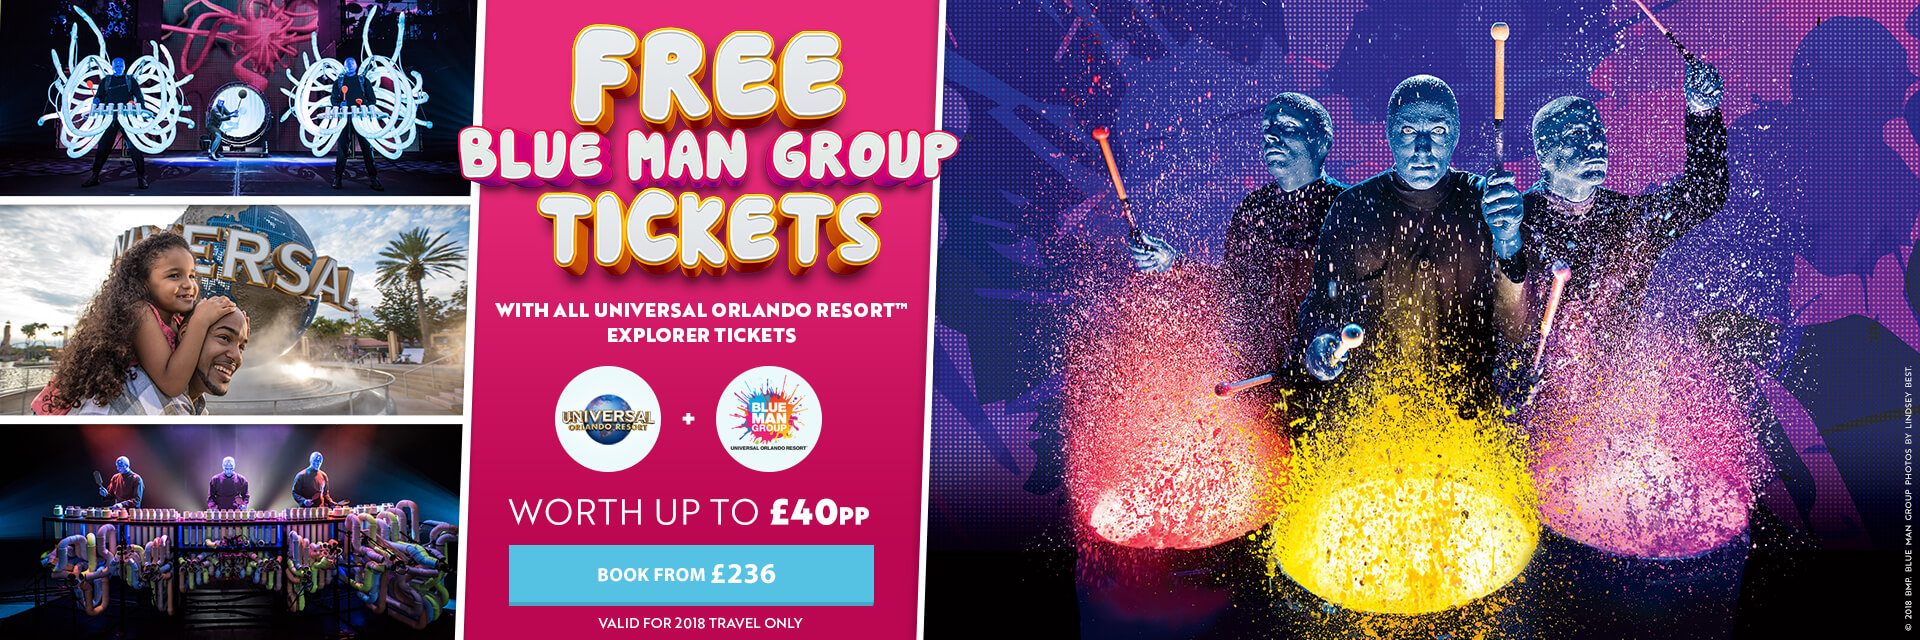 Universal Orlando Free Blue Man Group Offer